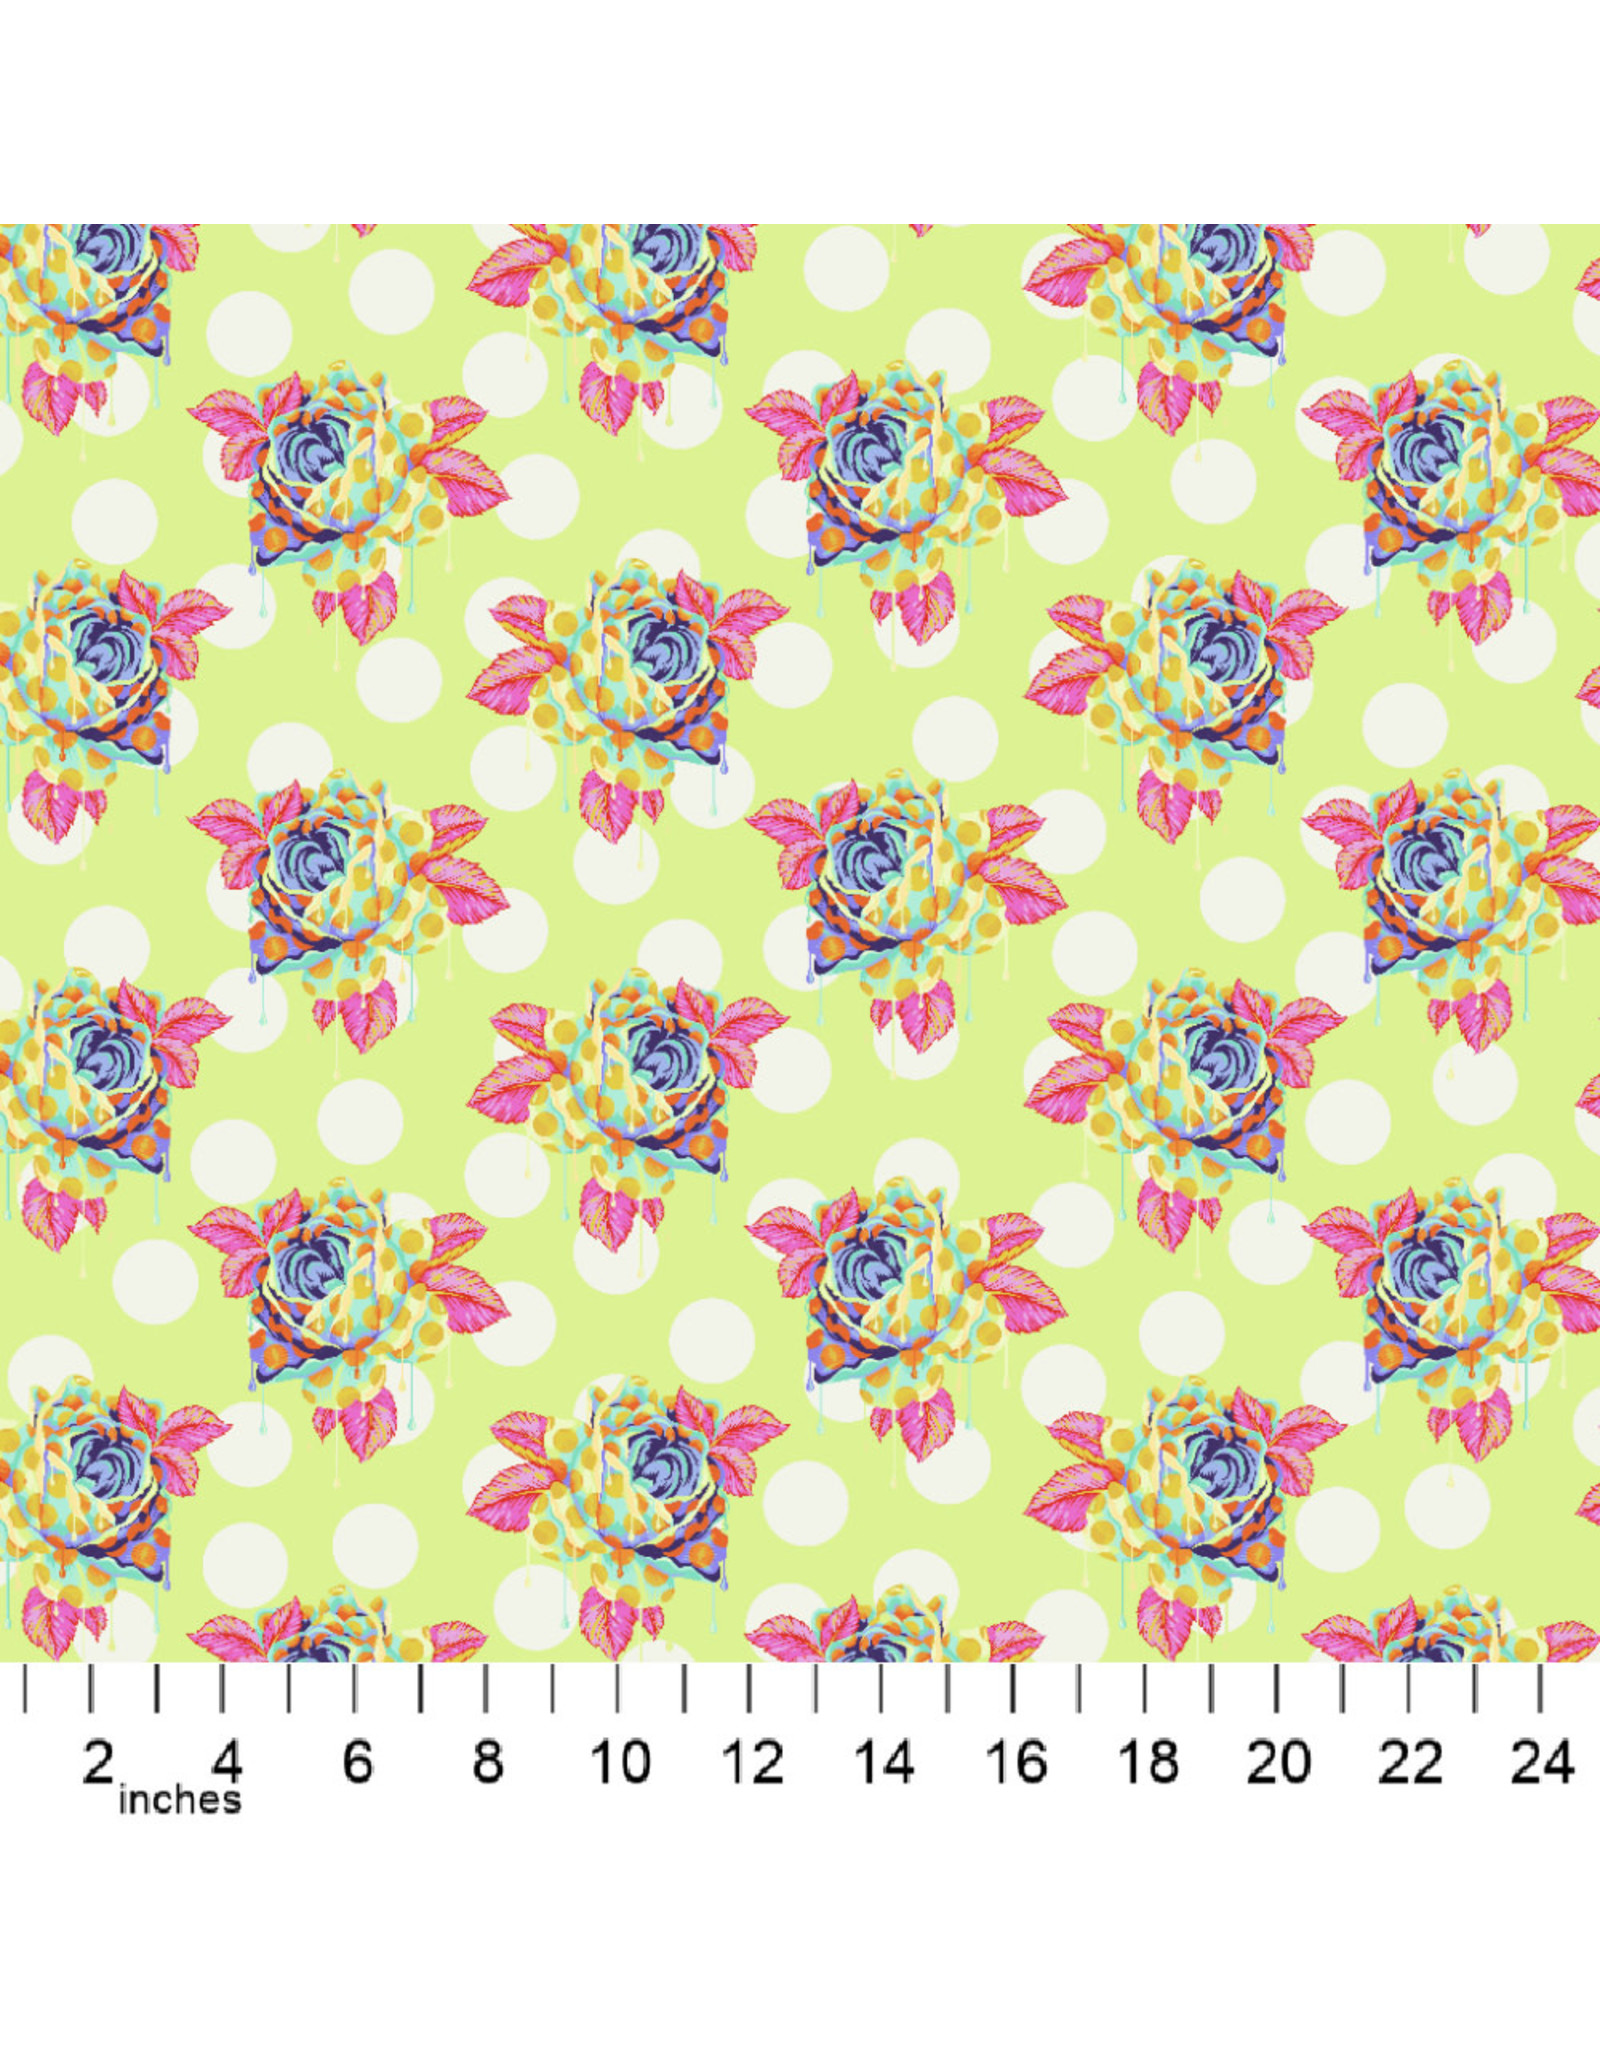 Tula Pink Curiouser and Curiouser, Painted Roses in Sugar, Fabric Half-Yards